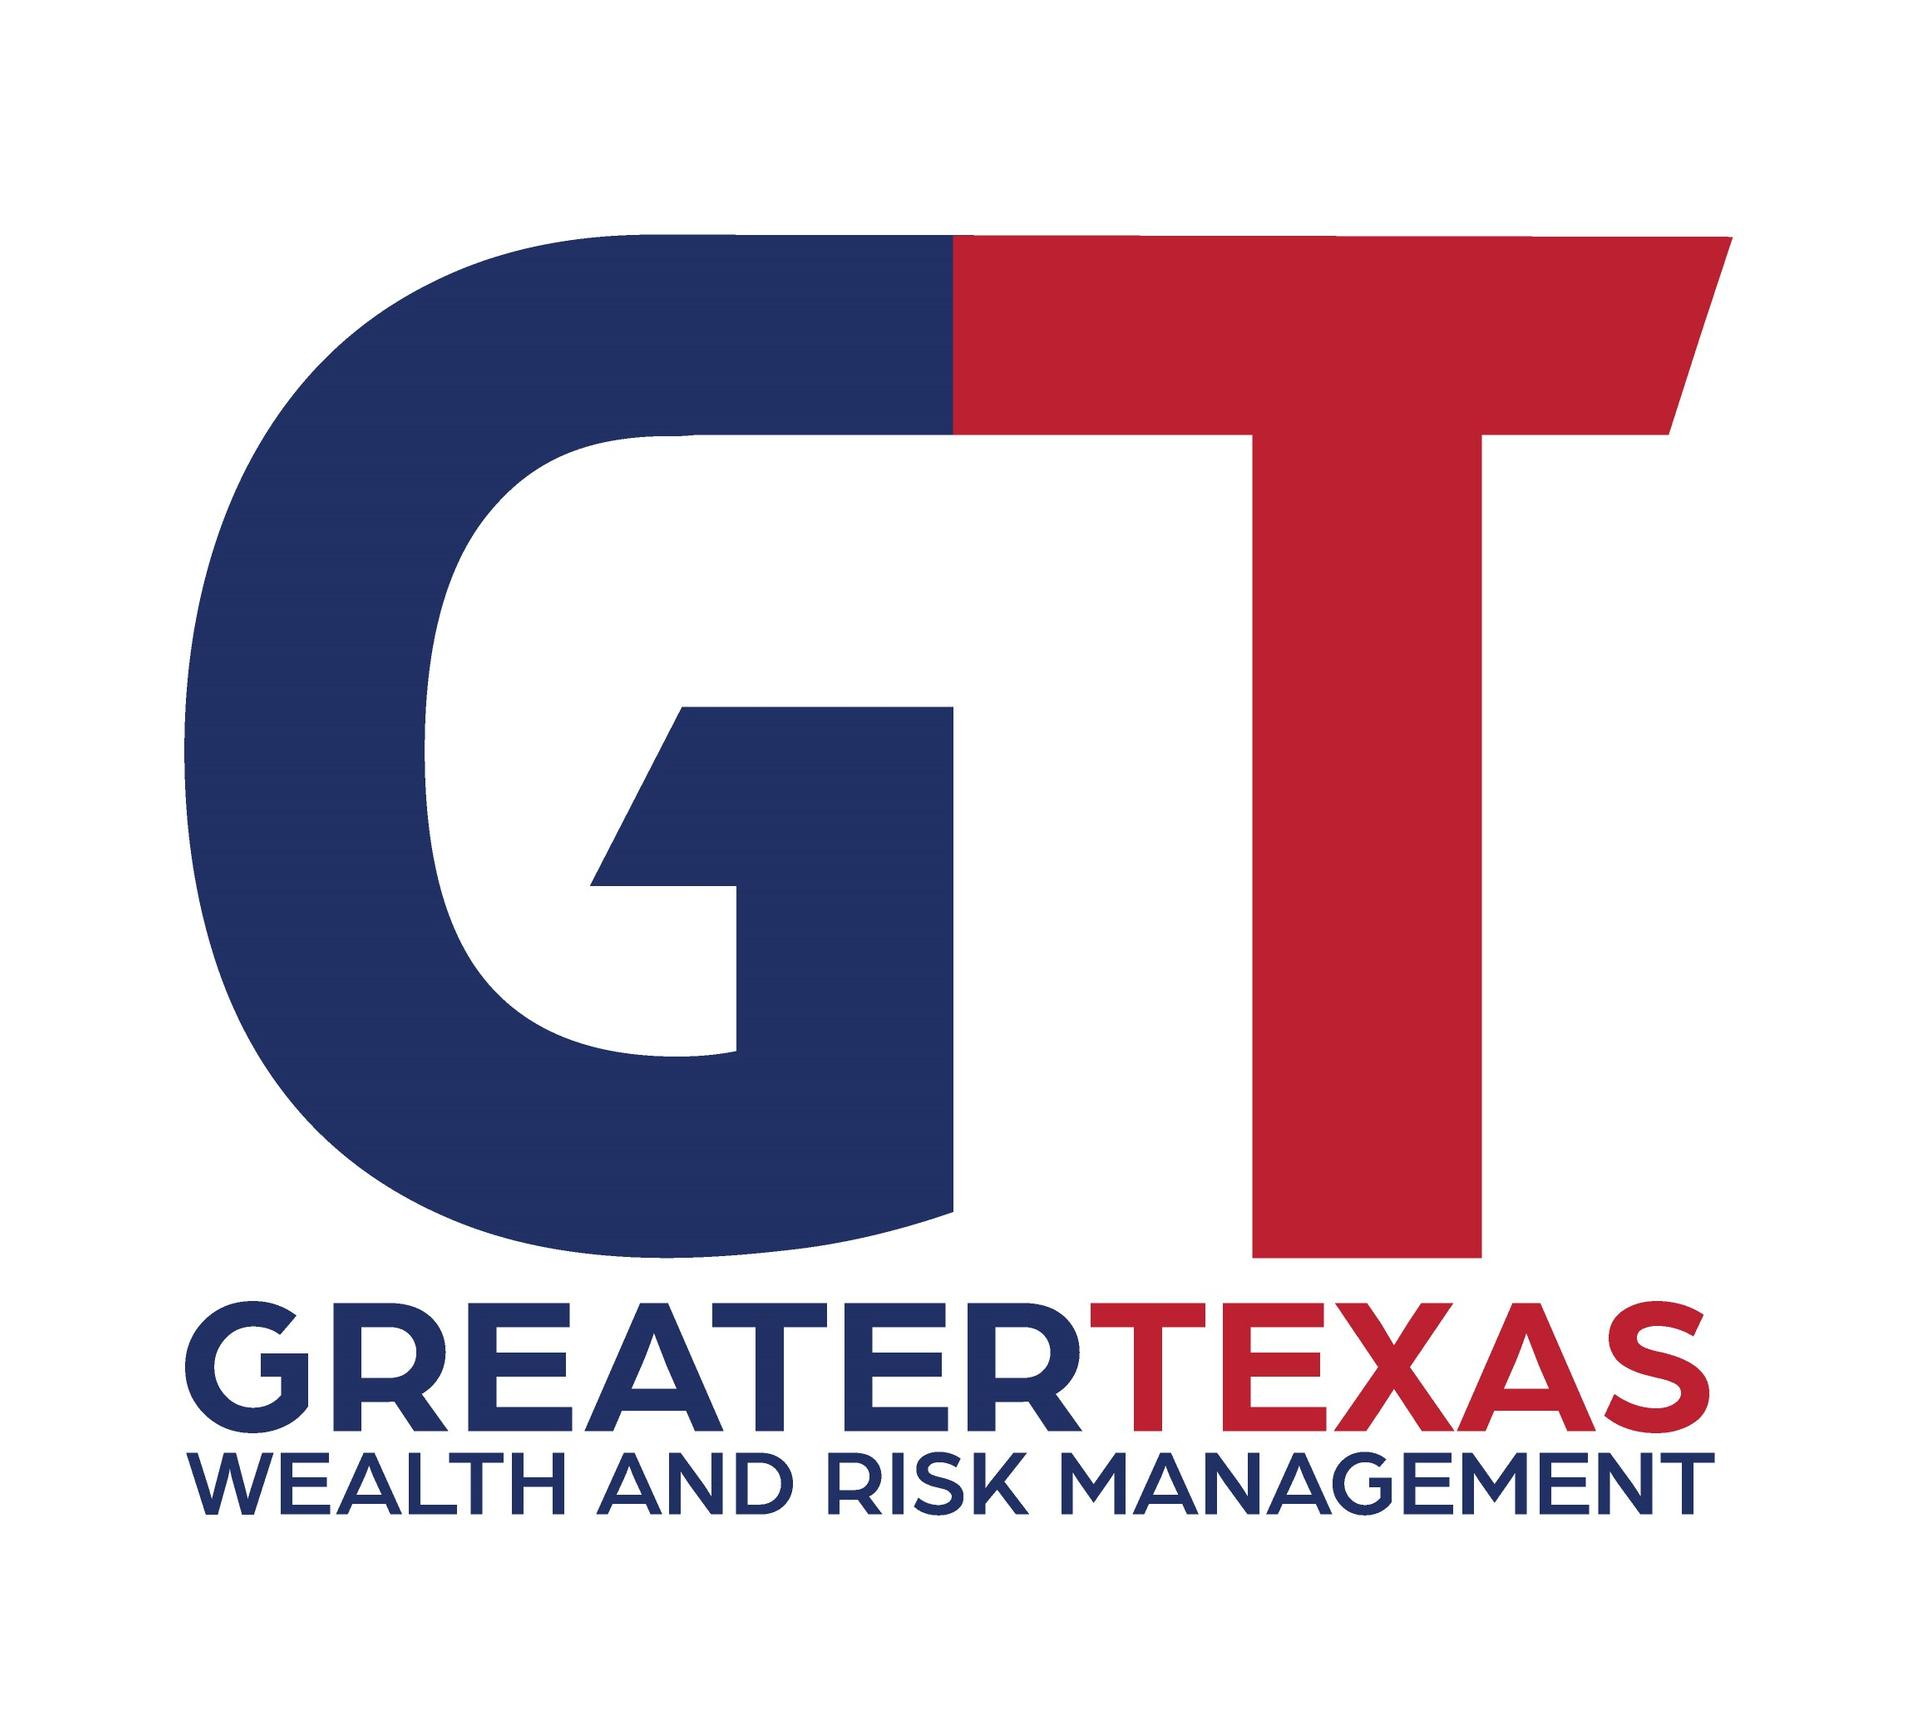 GREATER TEXASWealth and Risk Management, LLC